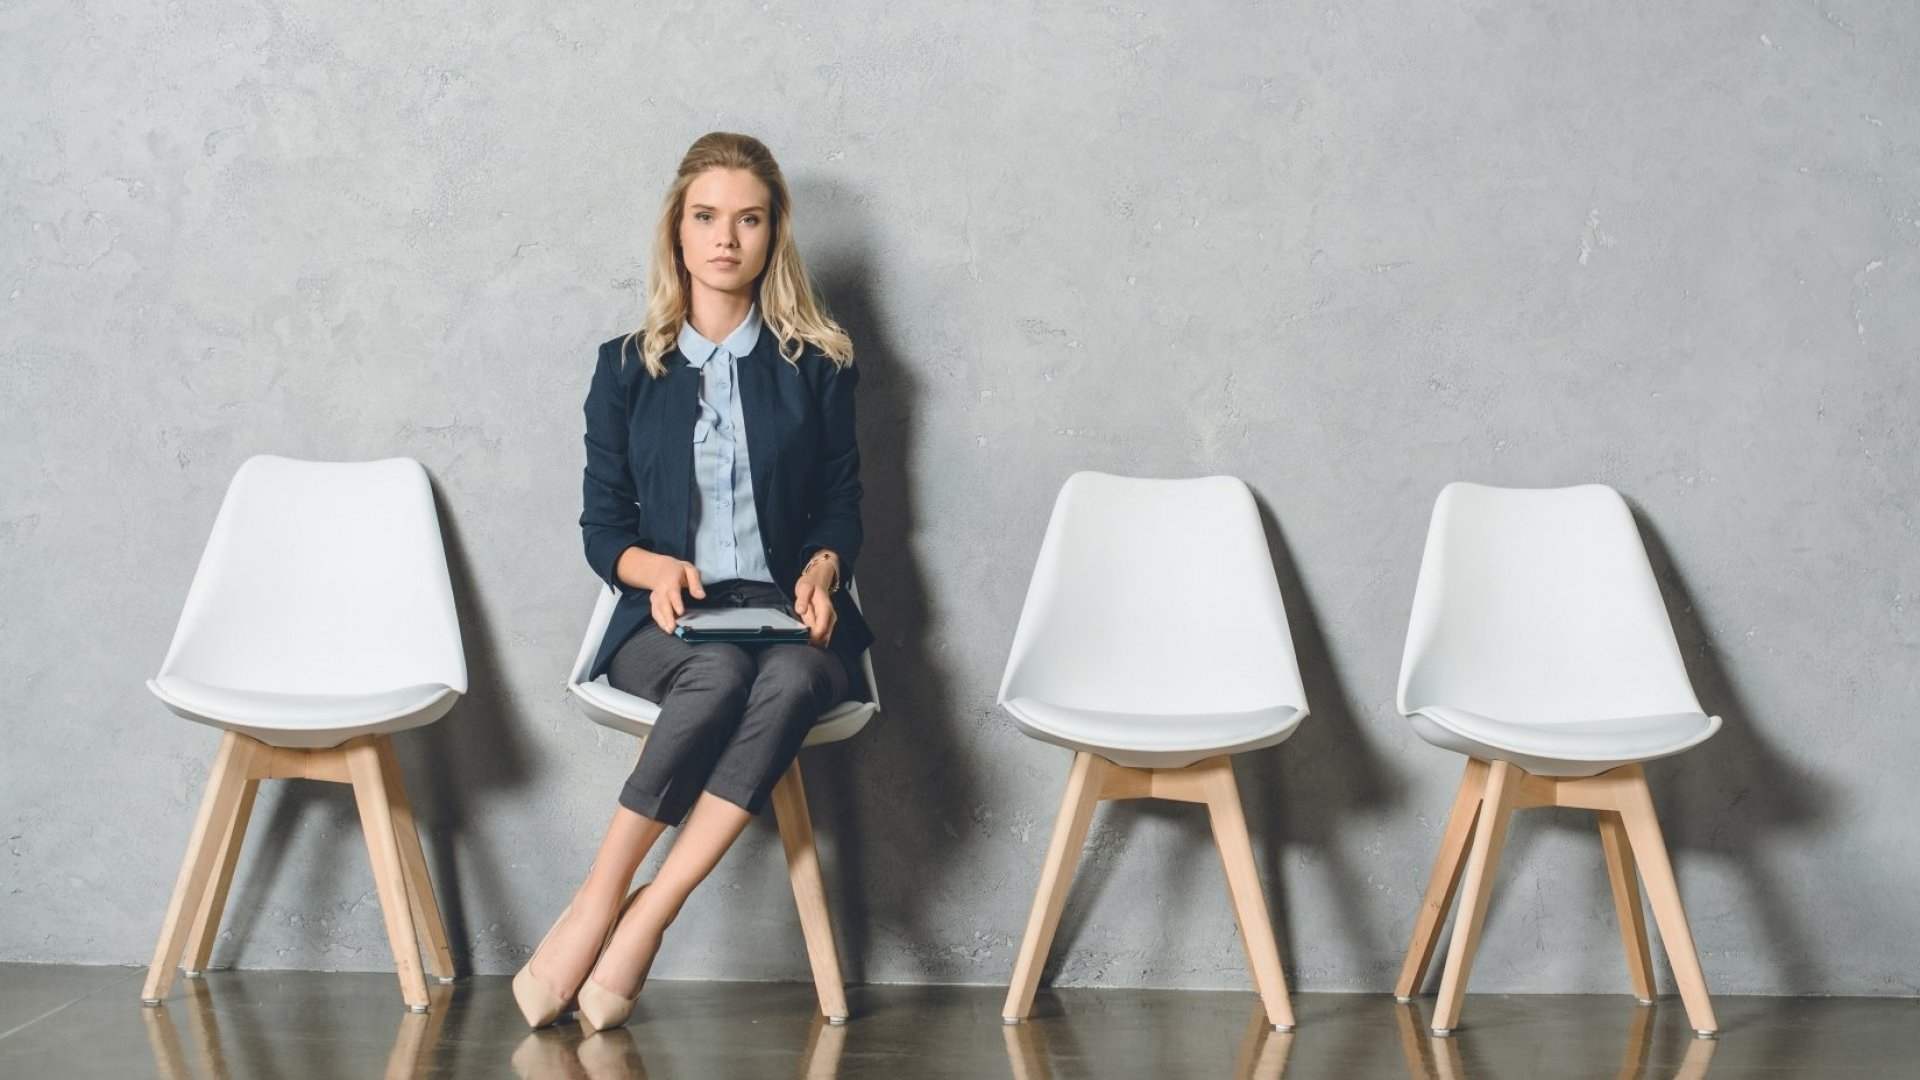 Time to Look for a New Job? These 7 Warning Signs Will Let You Know When It's Time to Go